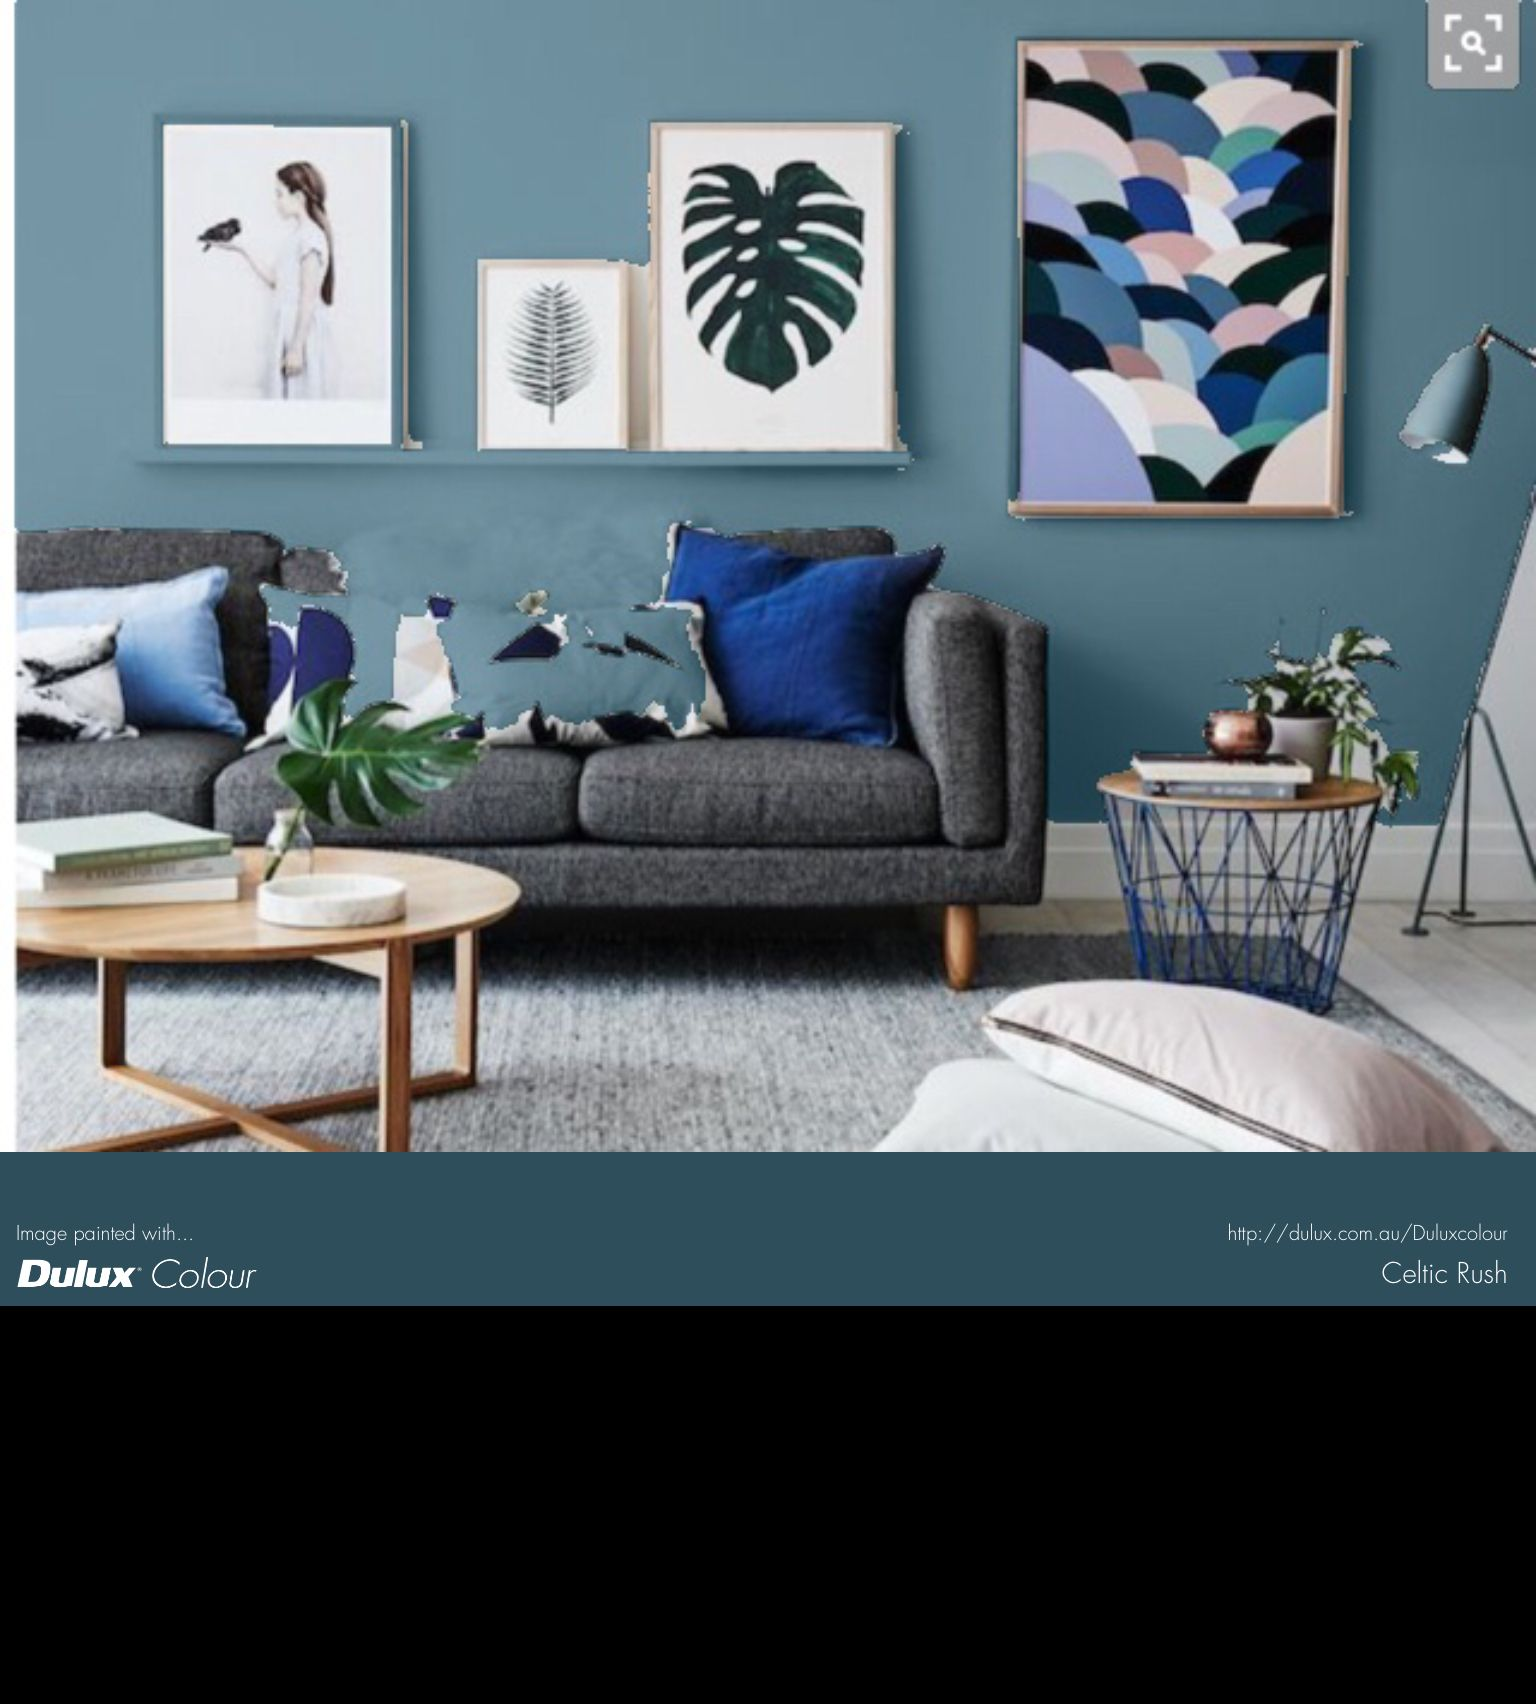 Celtic rush paint i just found my perfect duluxcolour